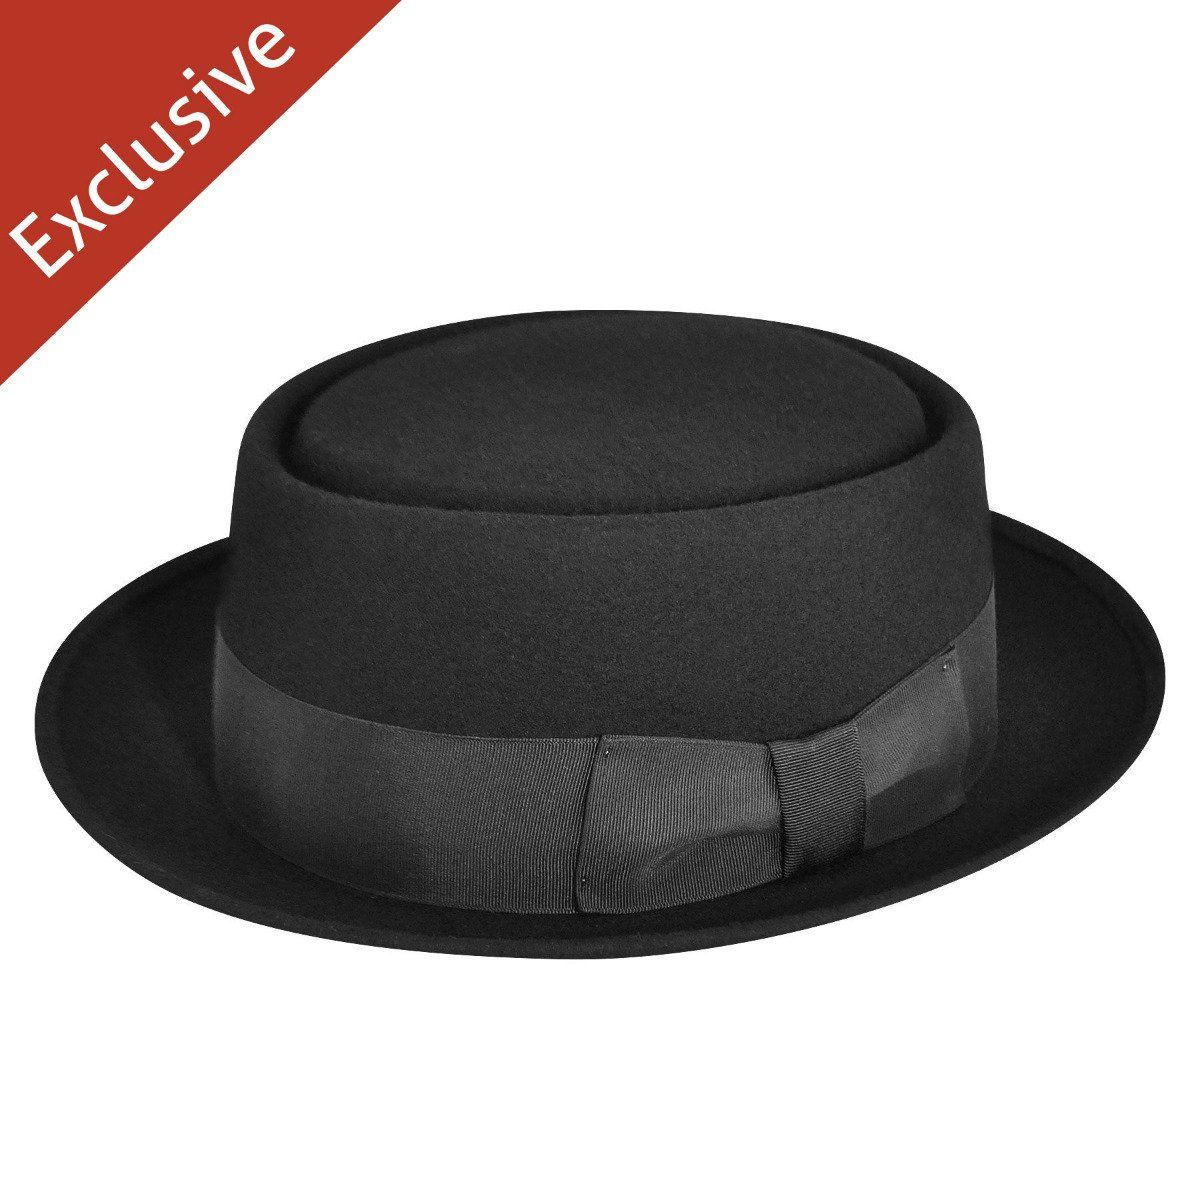 exquisite design innovative design cheap 1940s Men's Hats: Vintage Styles, History, Buying Guide ...